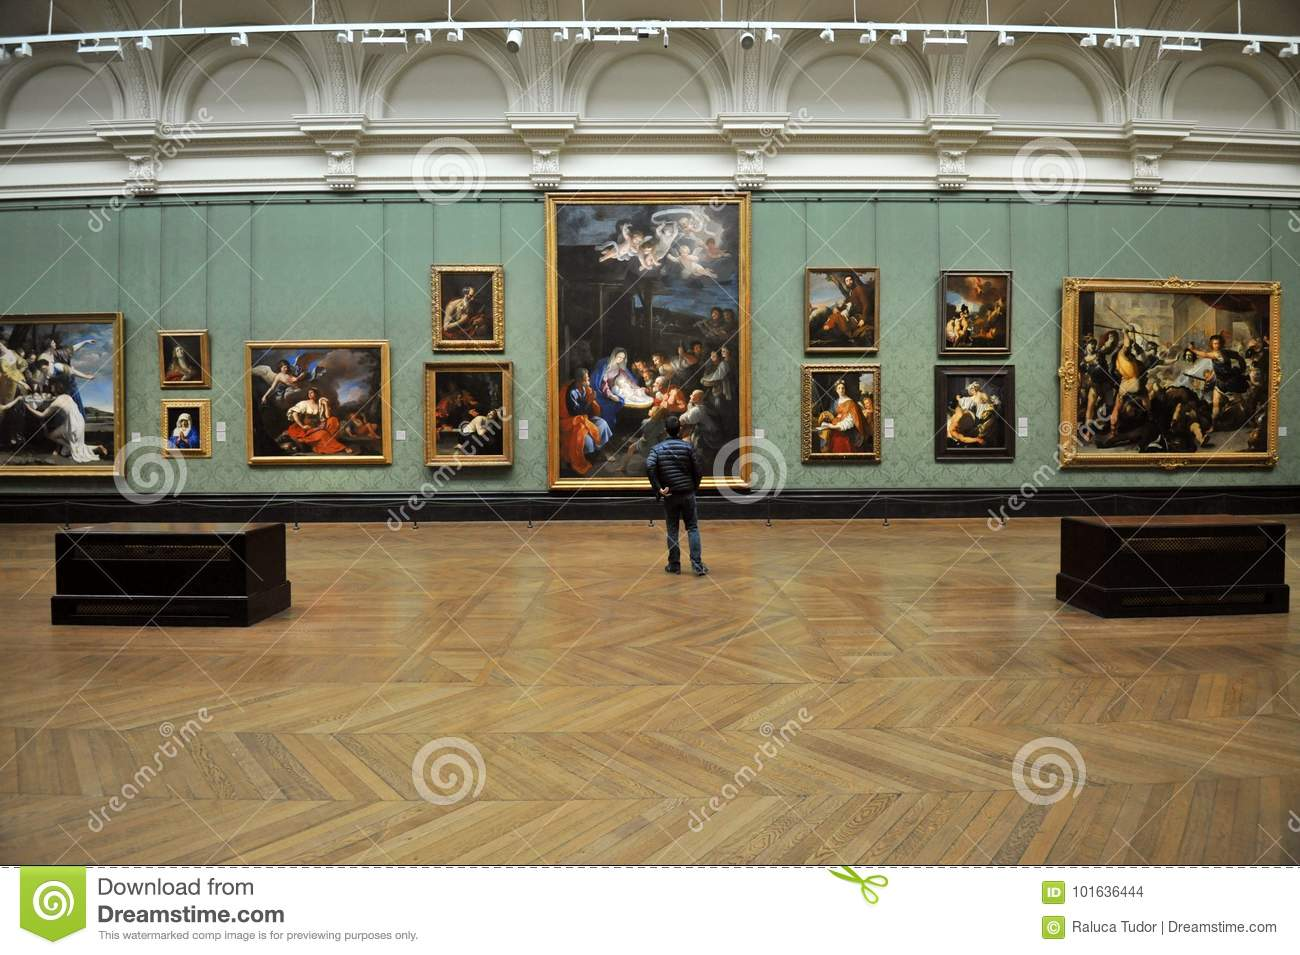 Musee Interieur De National Gallery A Londres Angleterre Image Stock Editorial Image Du Angleterre Londres 101636444